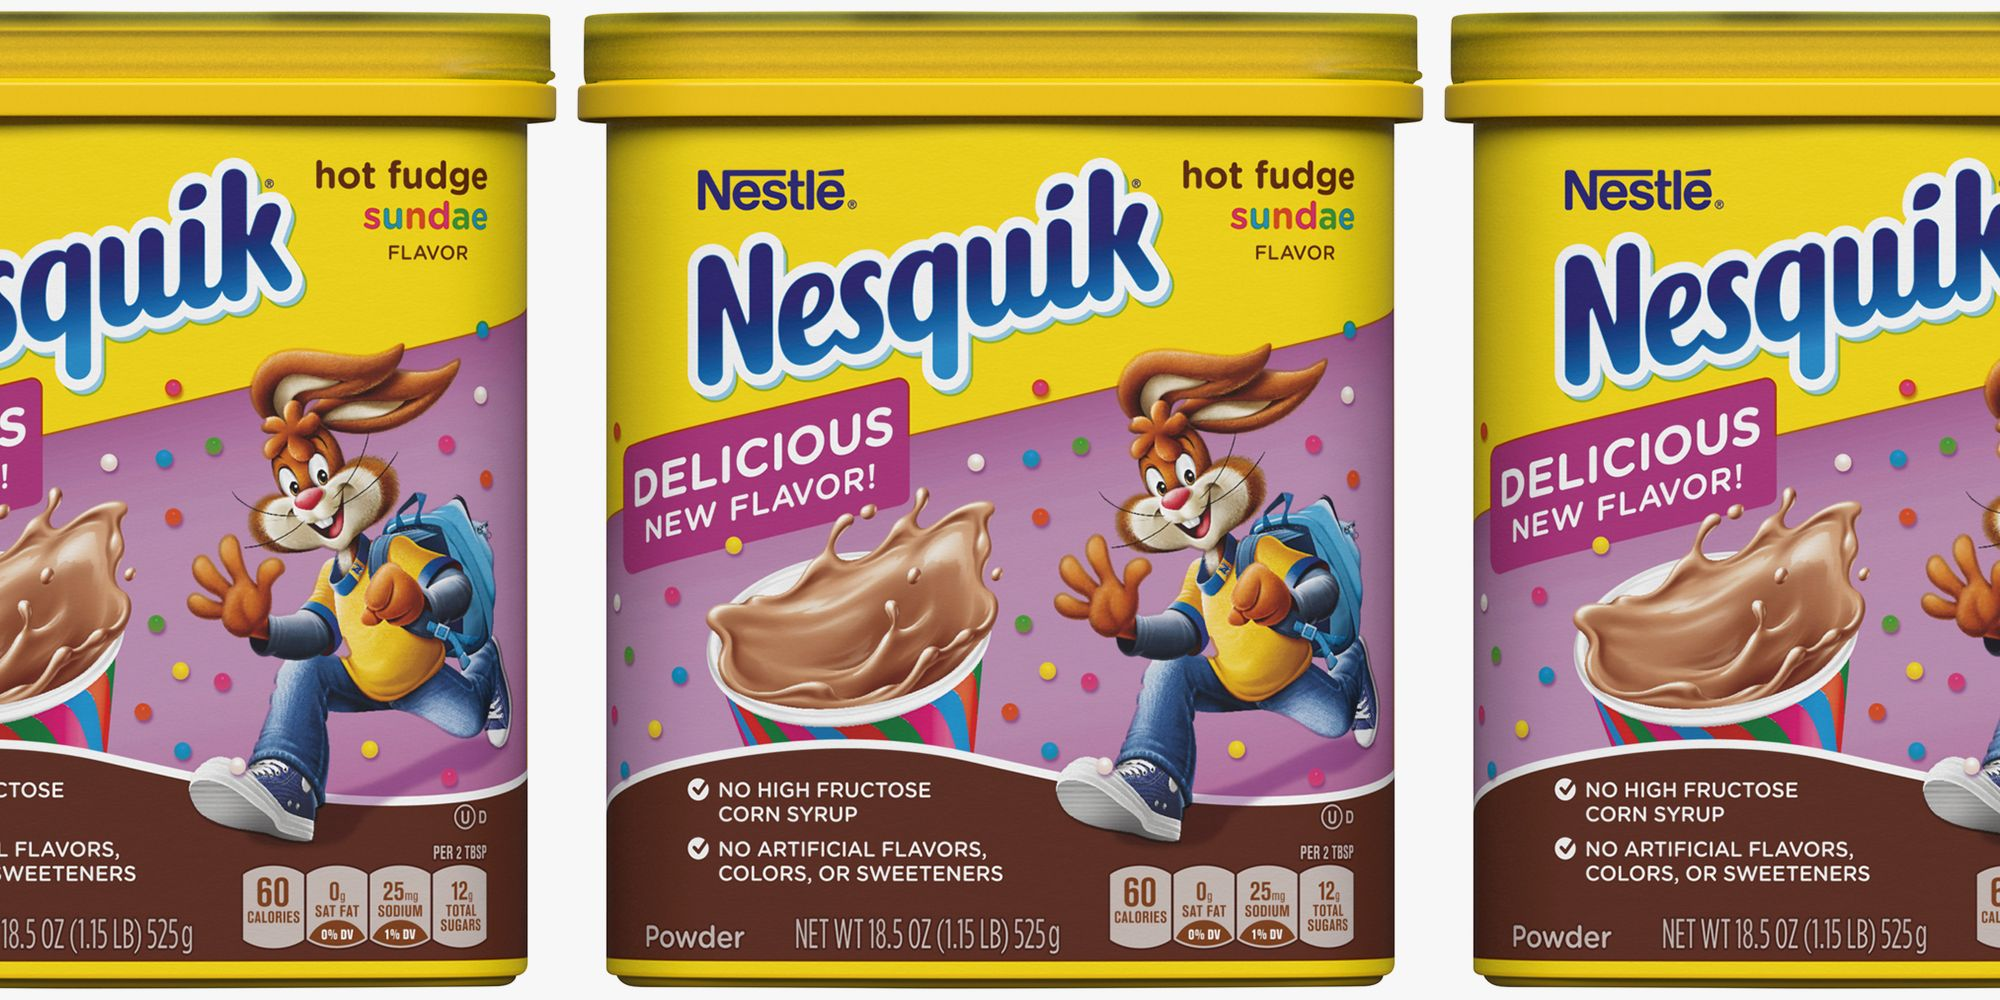 Nesquik's New Hot Fudge Sundae Flavor Just Made Chocolate Milk Even Better